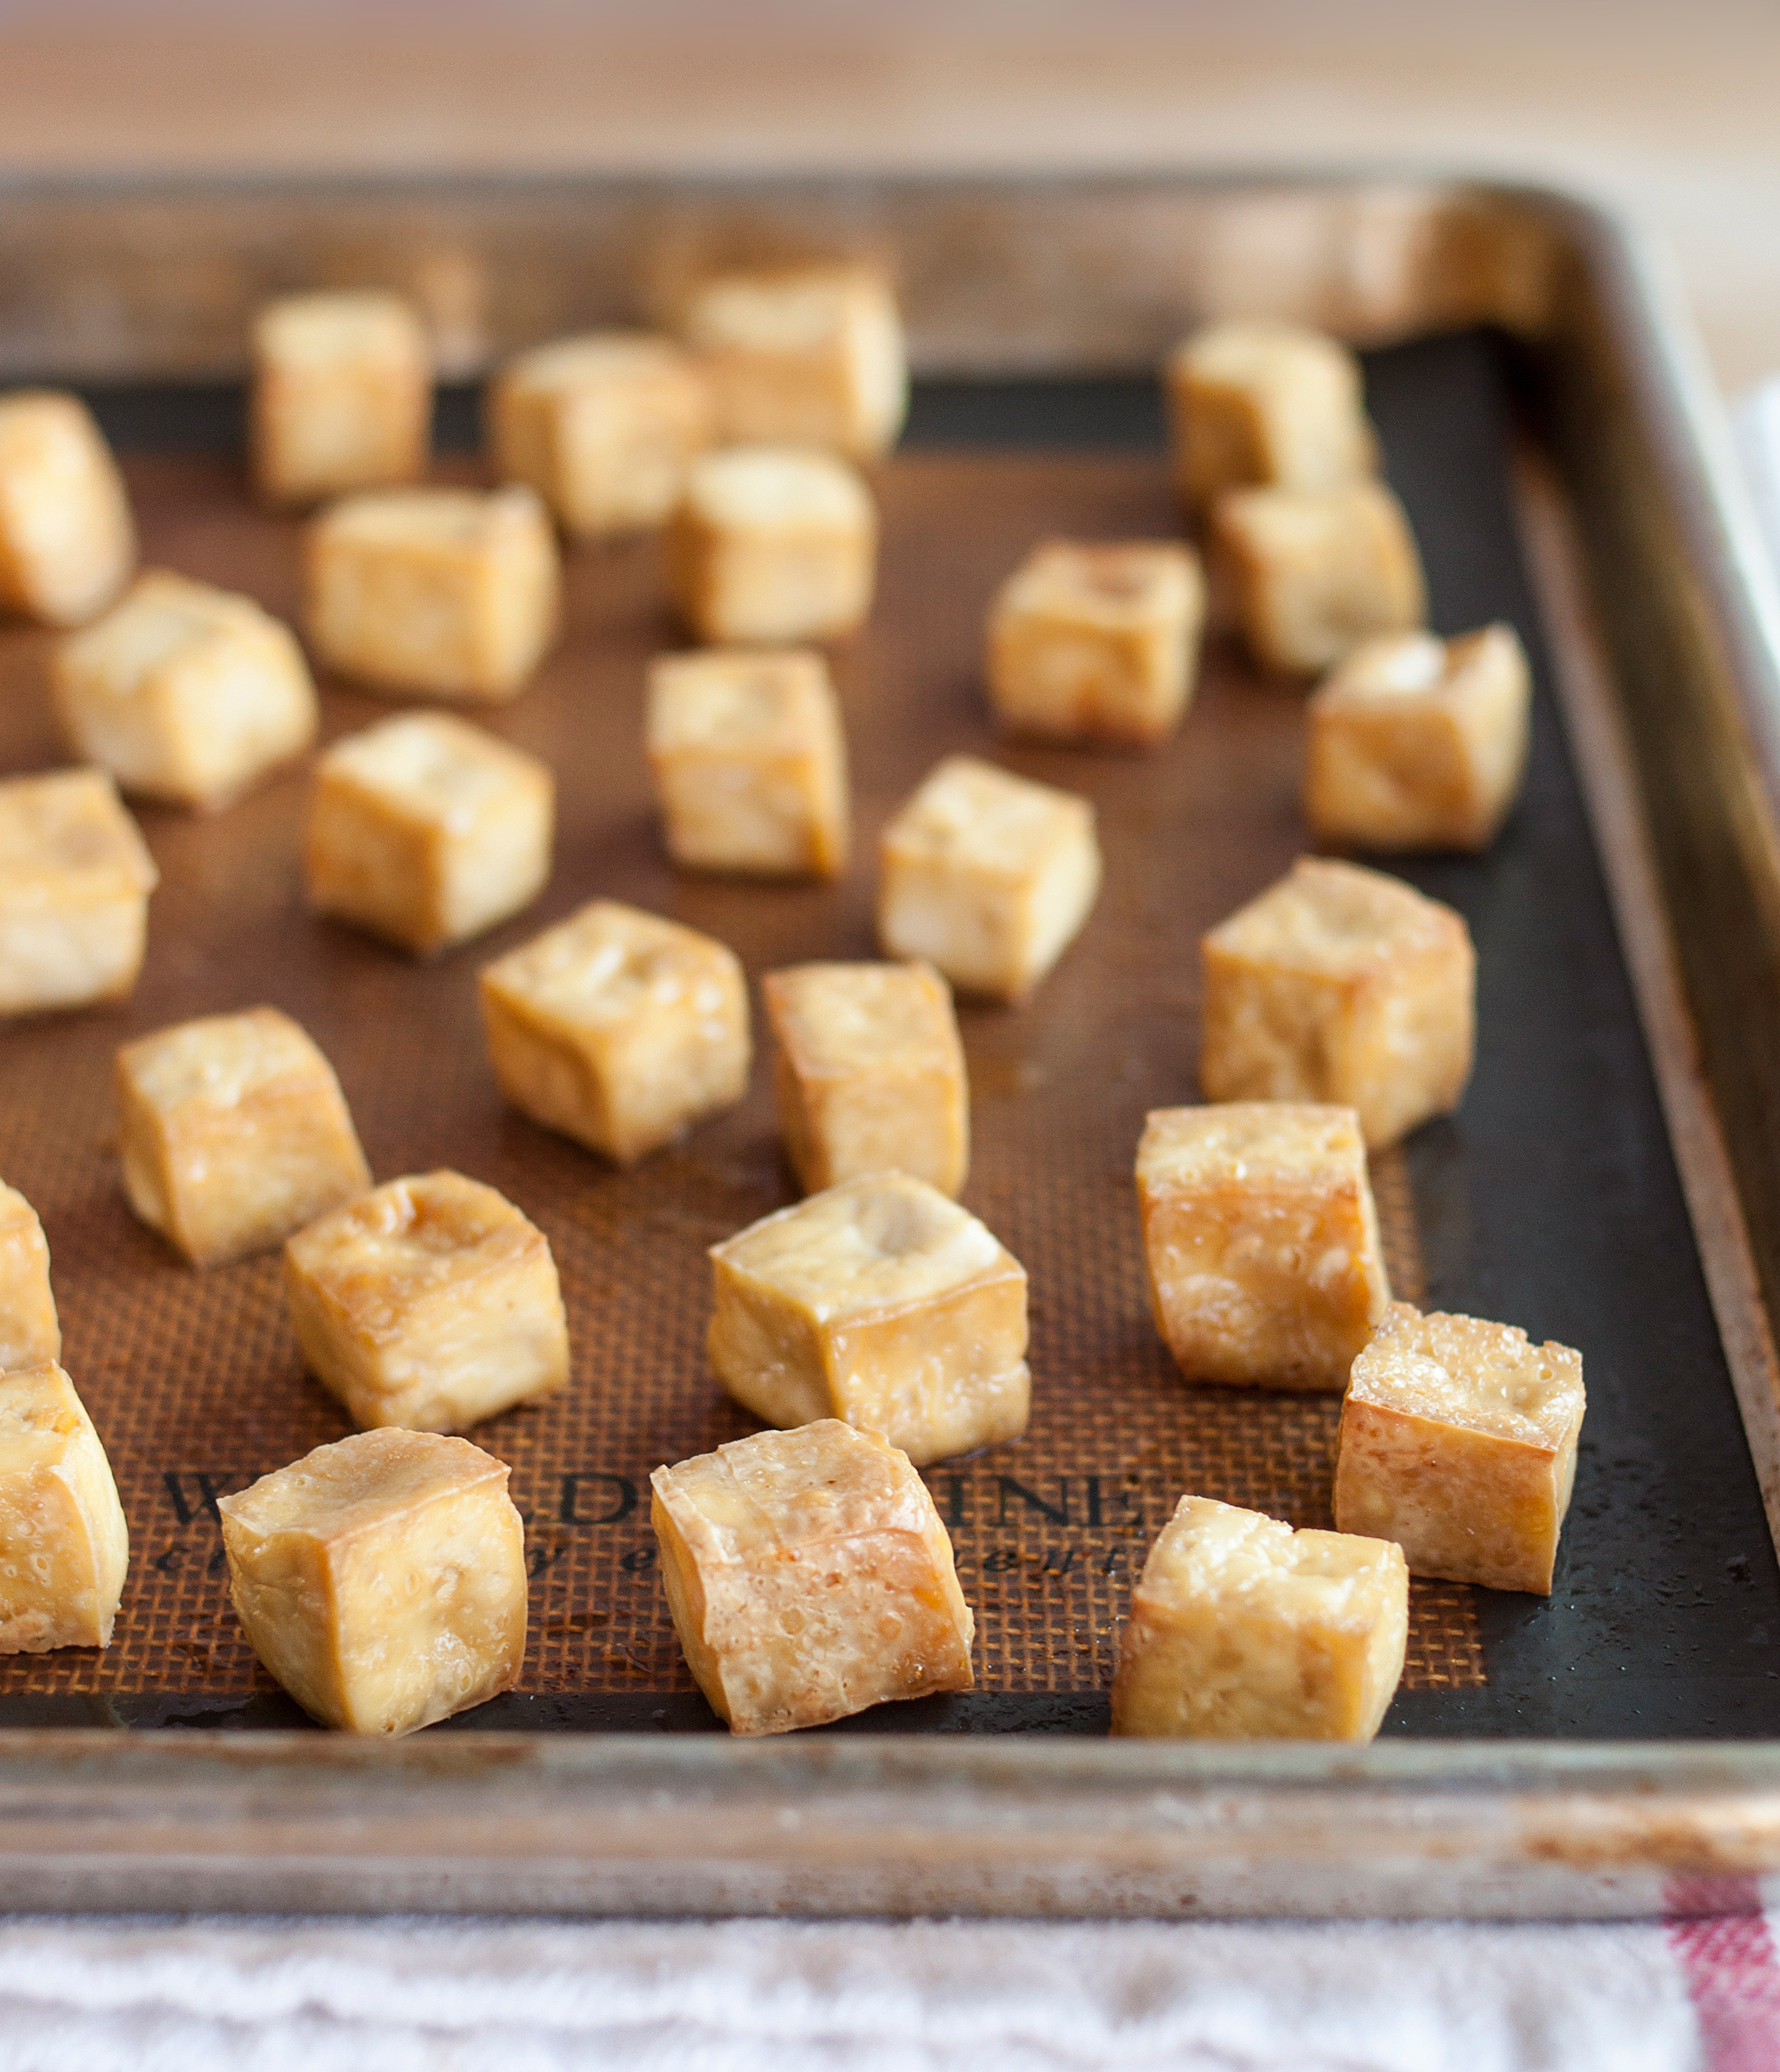 How To Make Baked Tofu for Salads, Sandwiches & Snacks | Kitchn